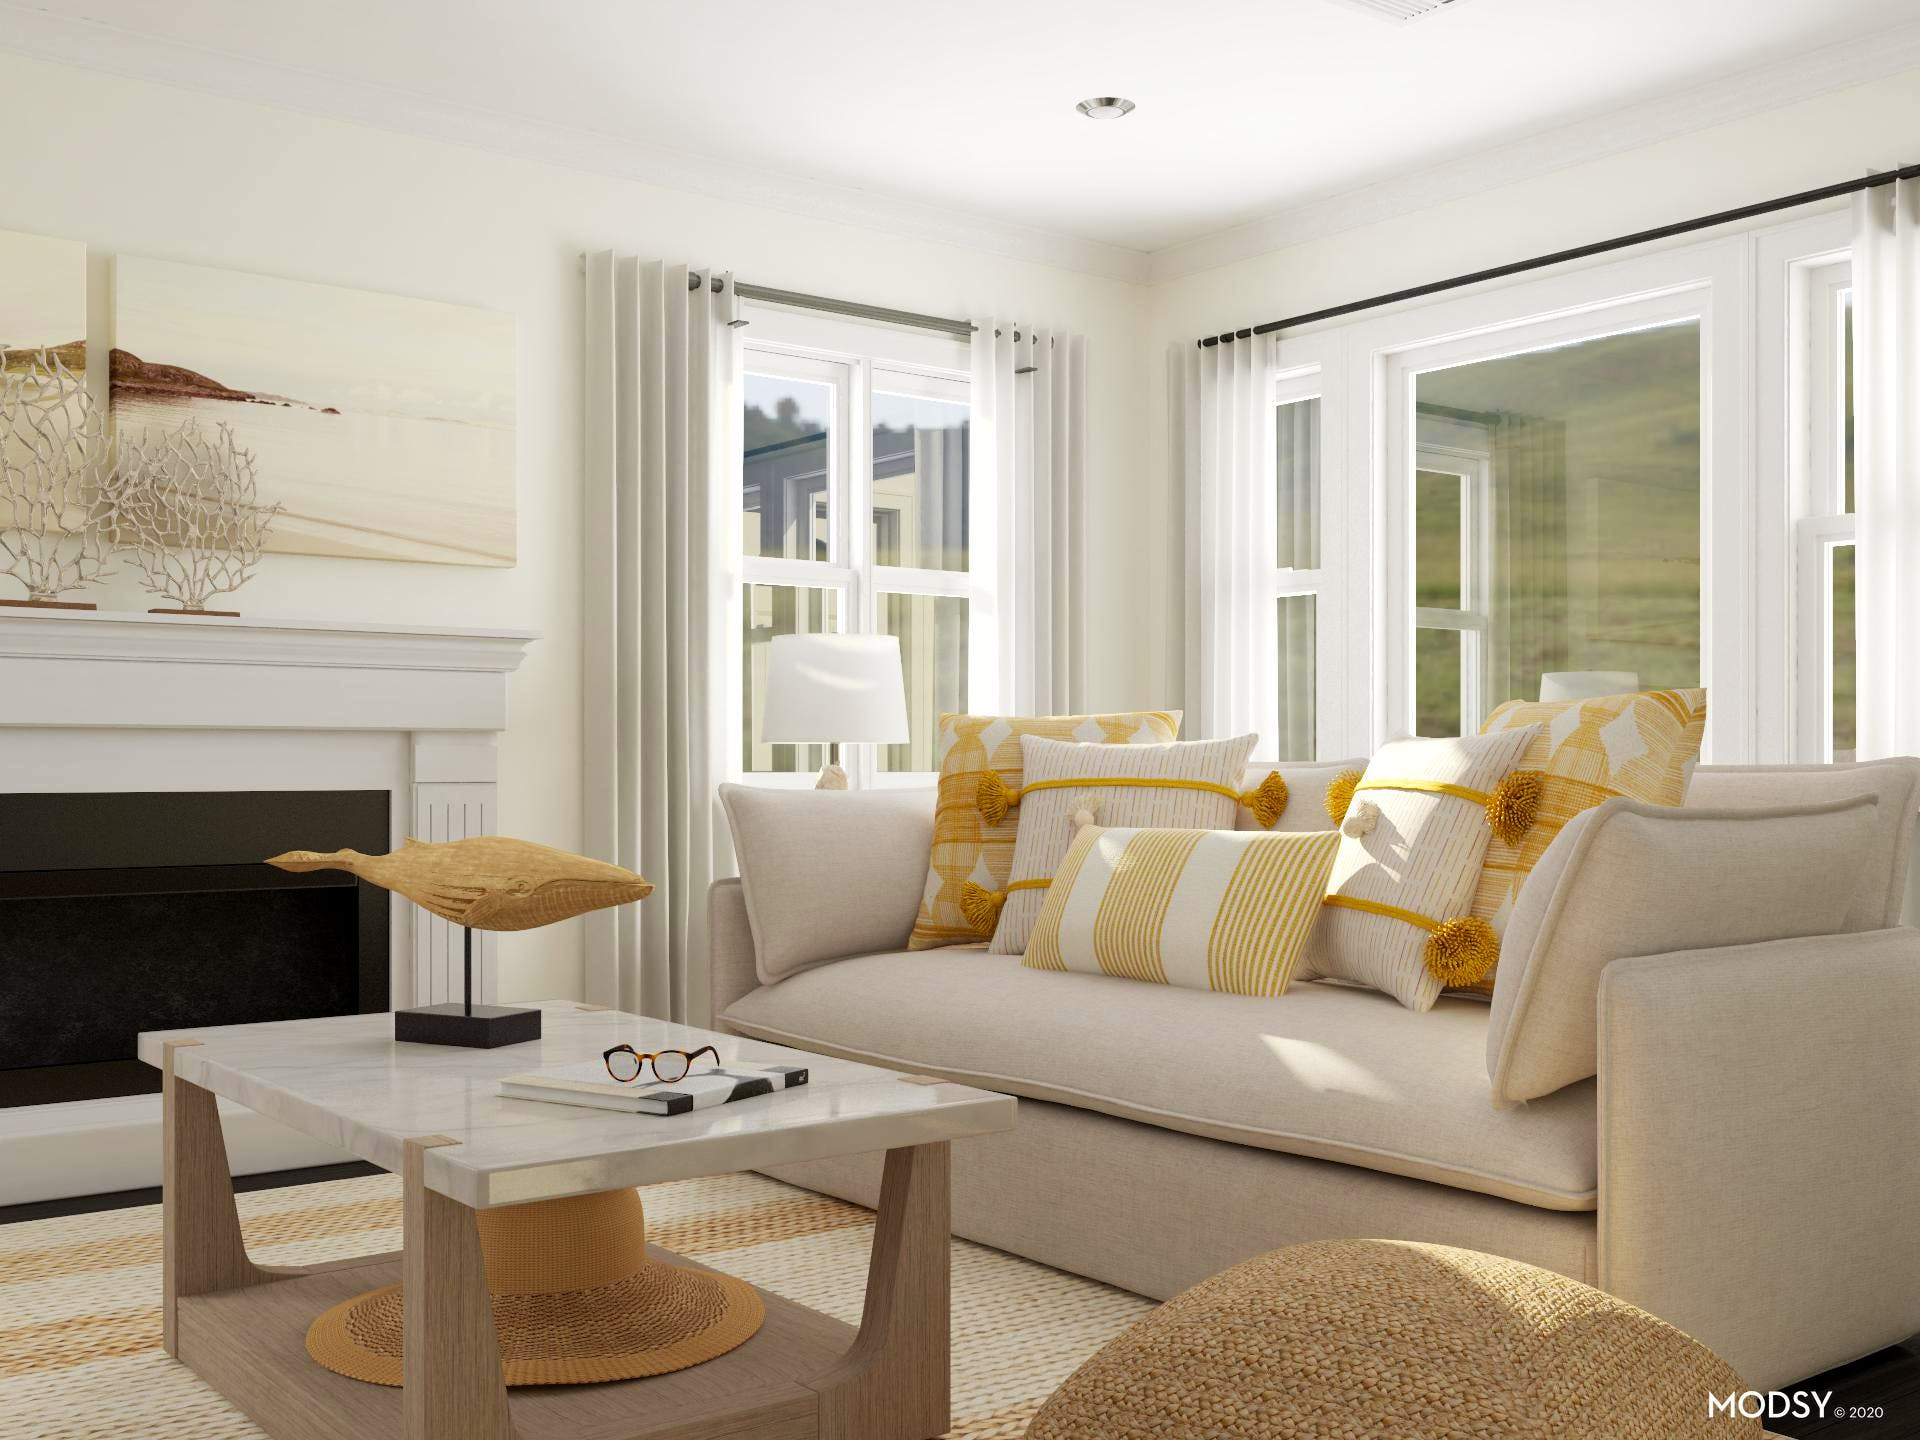 Can Yellow Be A Neutral Color?